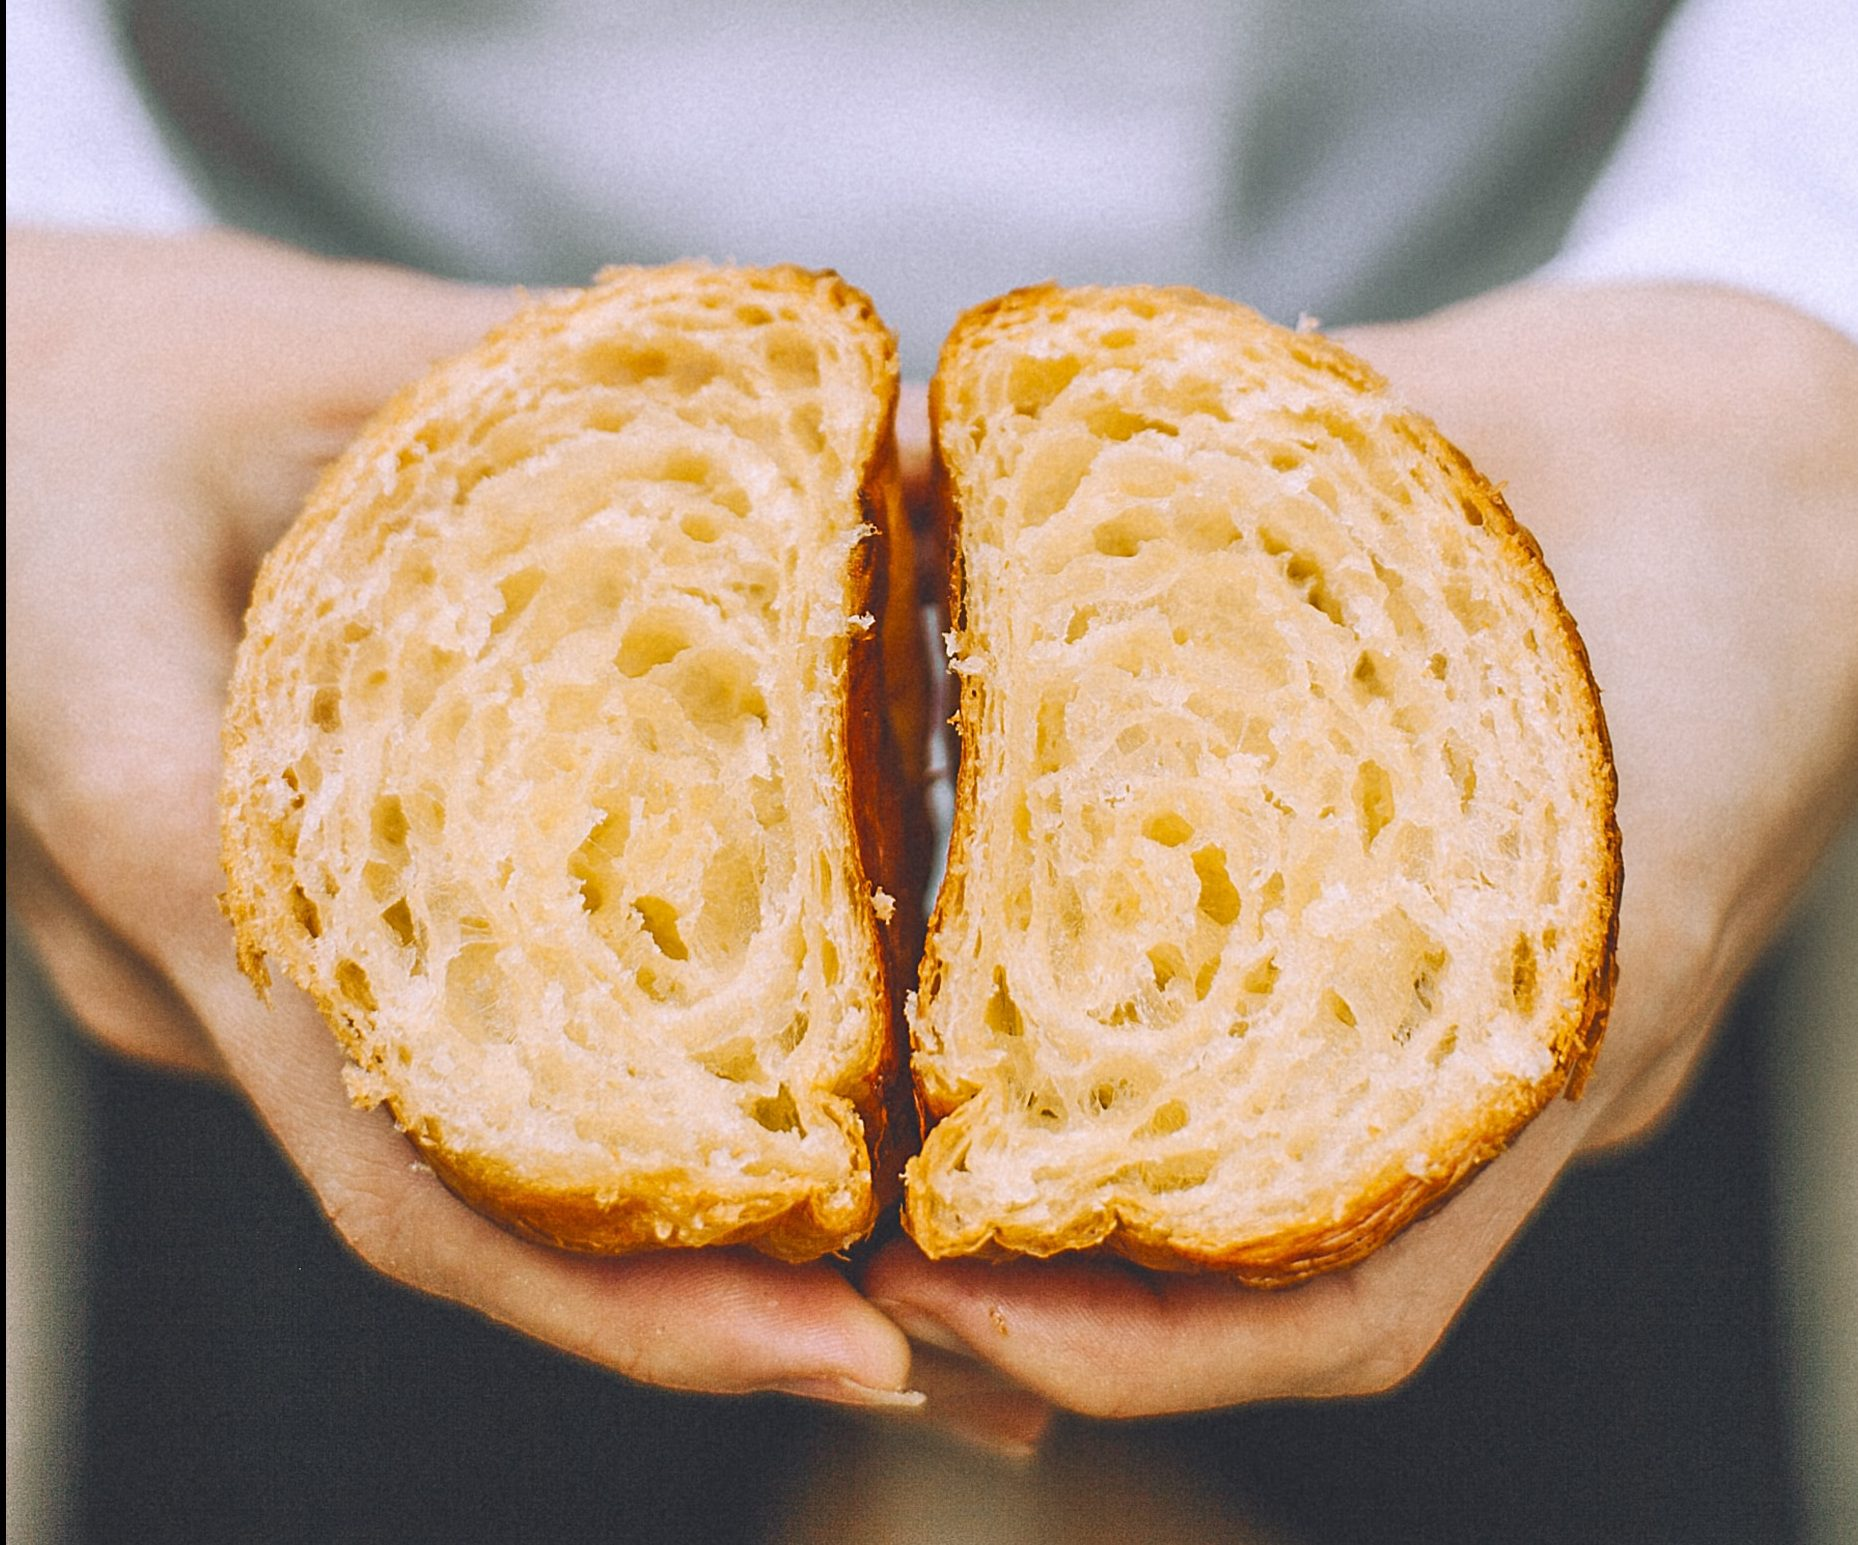 Image shows a close up view of a slice of bread. There are holes in the bread created by bubble of carbon dioxide.